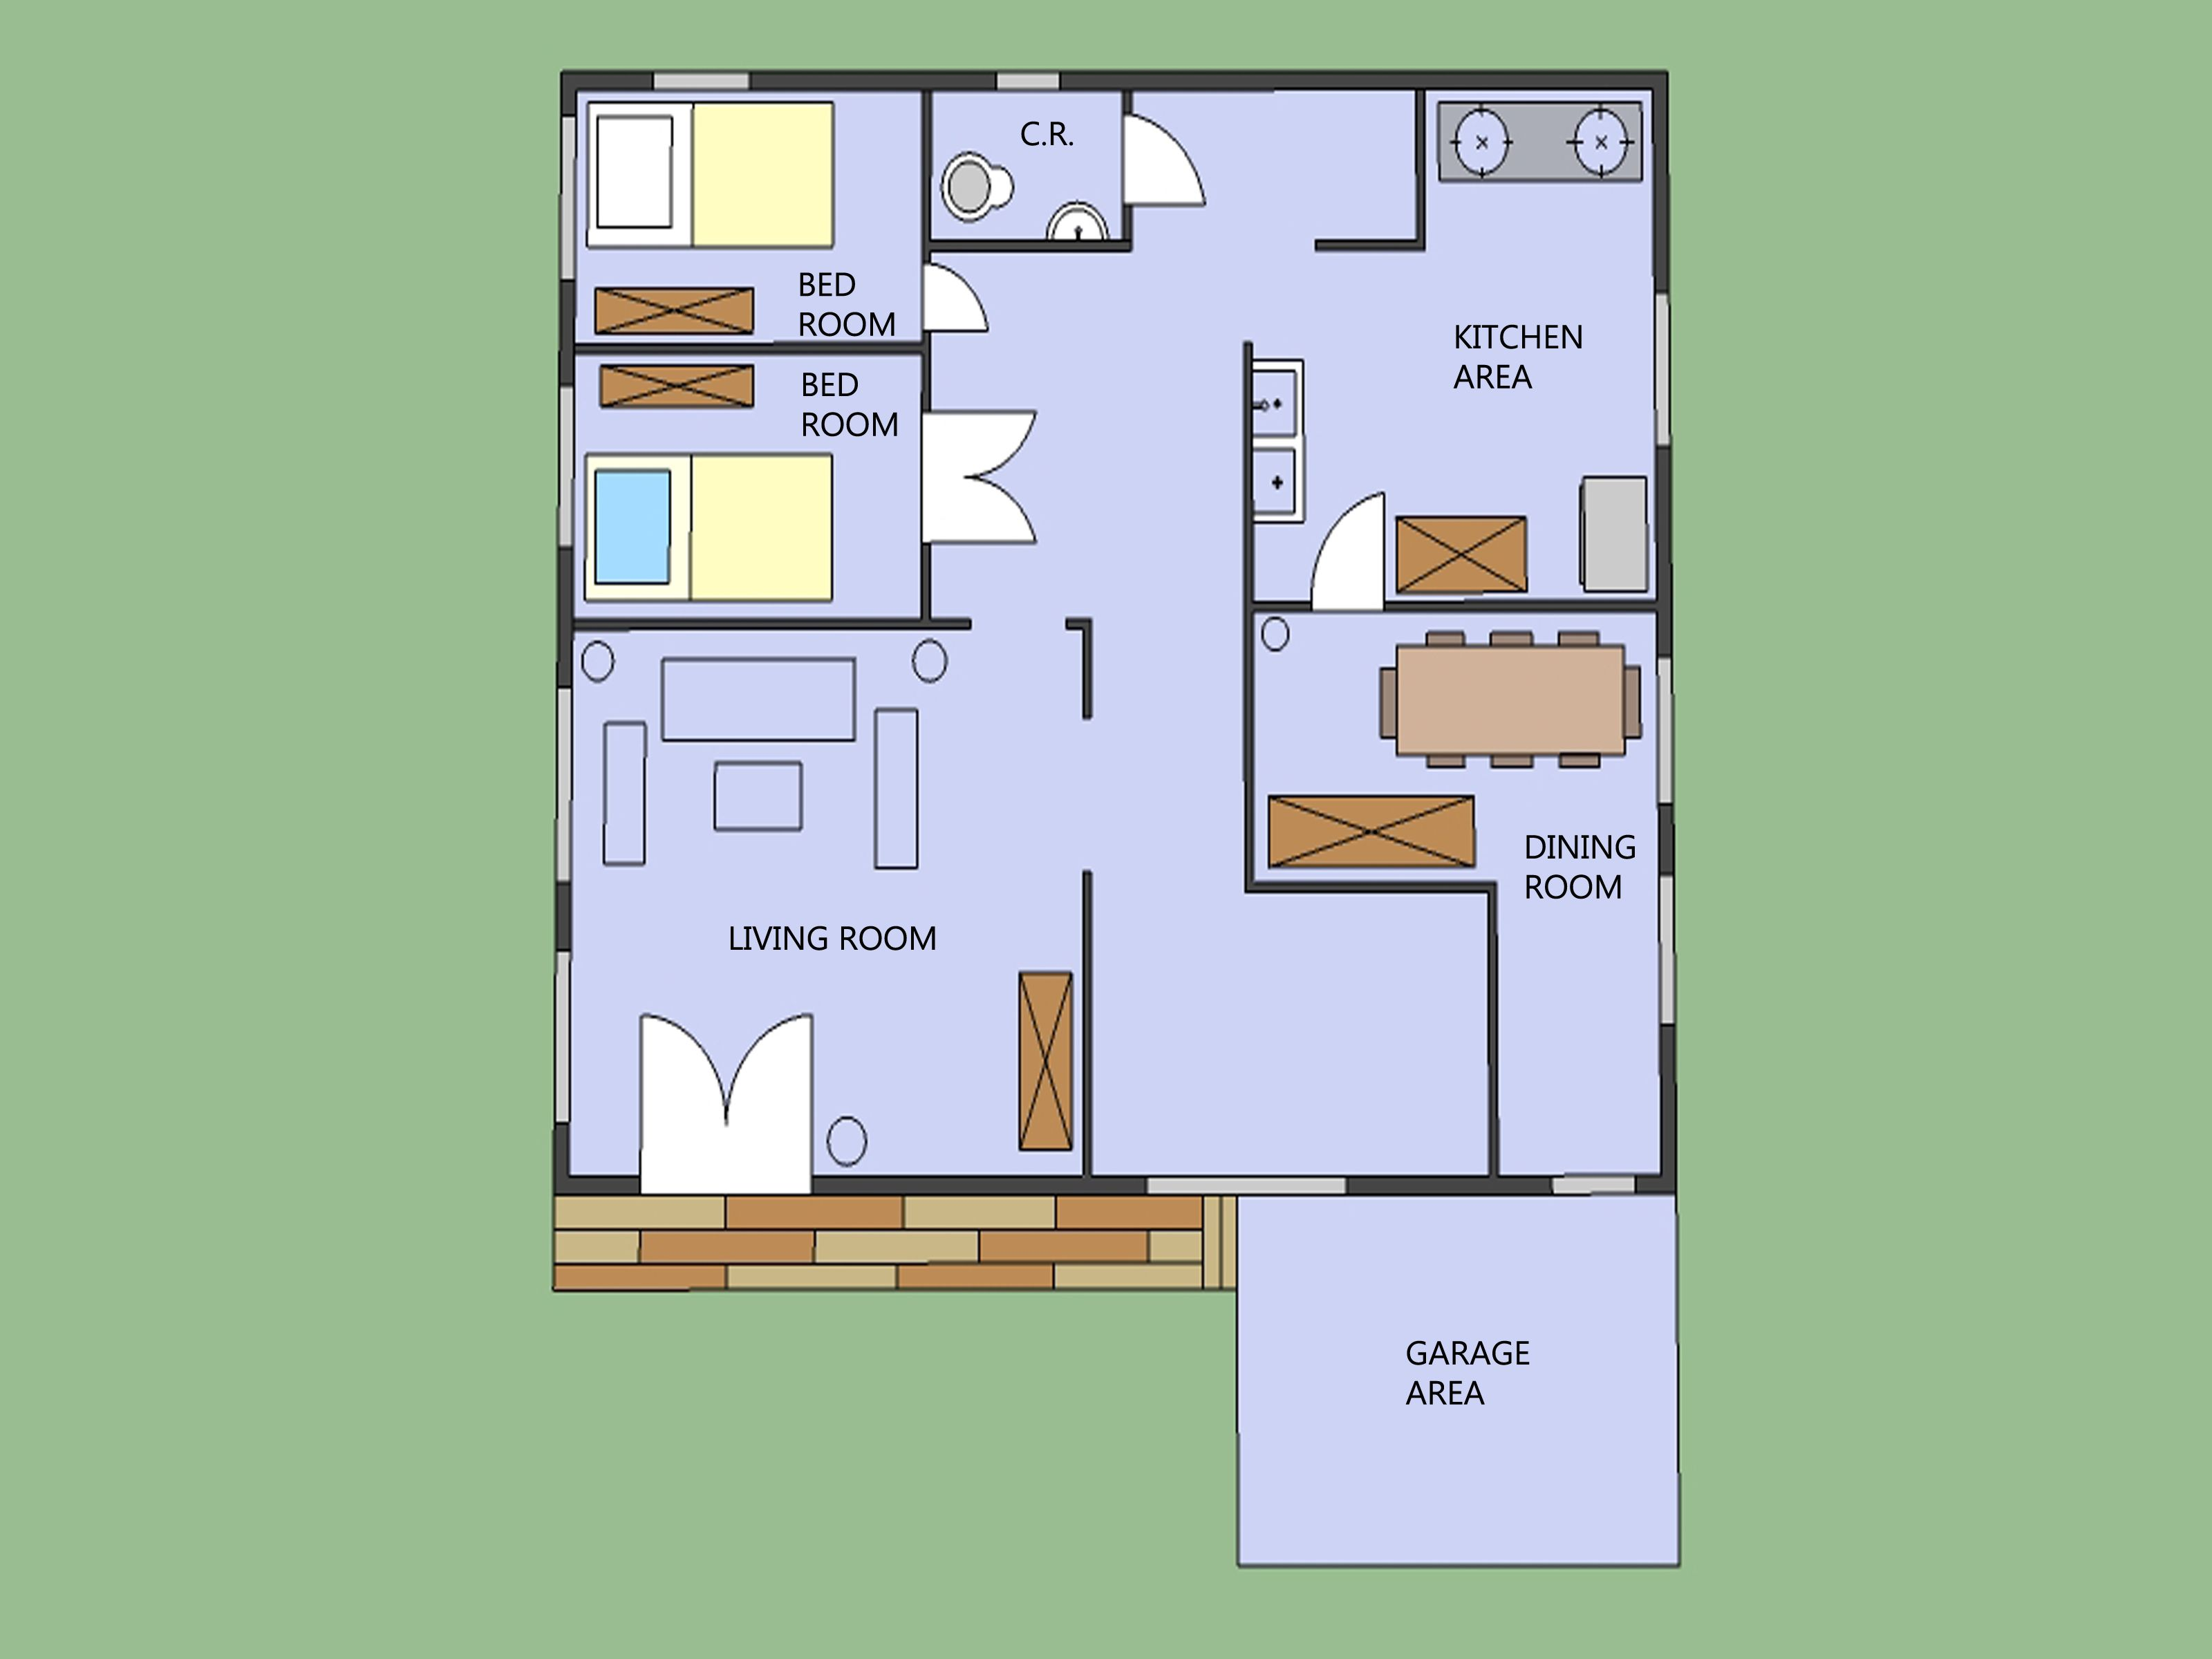 Draw Blueprints for a House | research | House blueprints